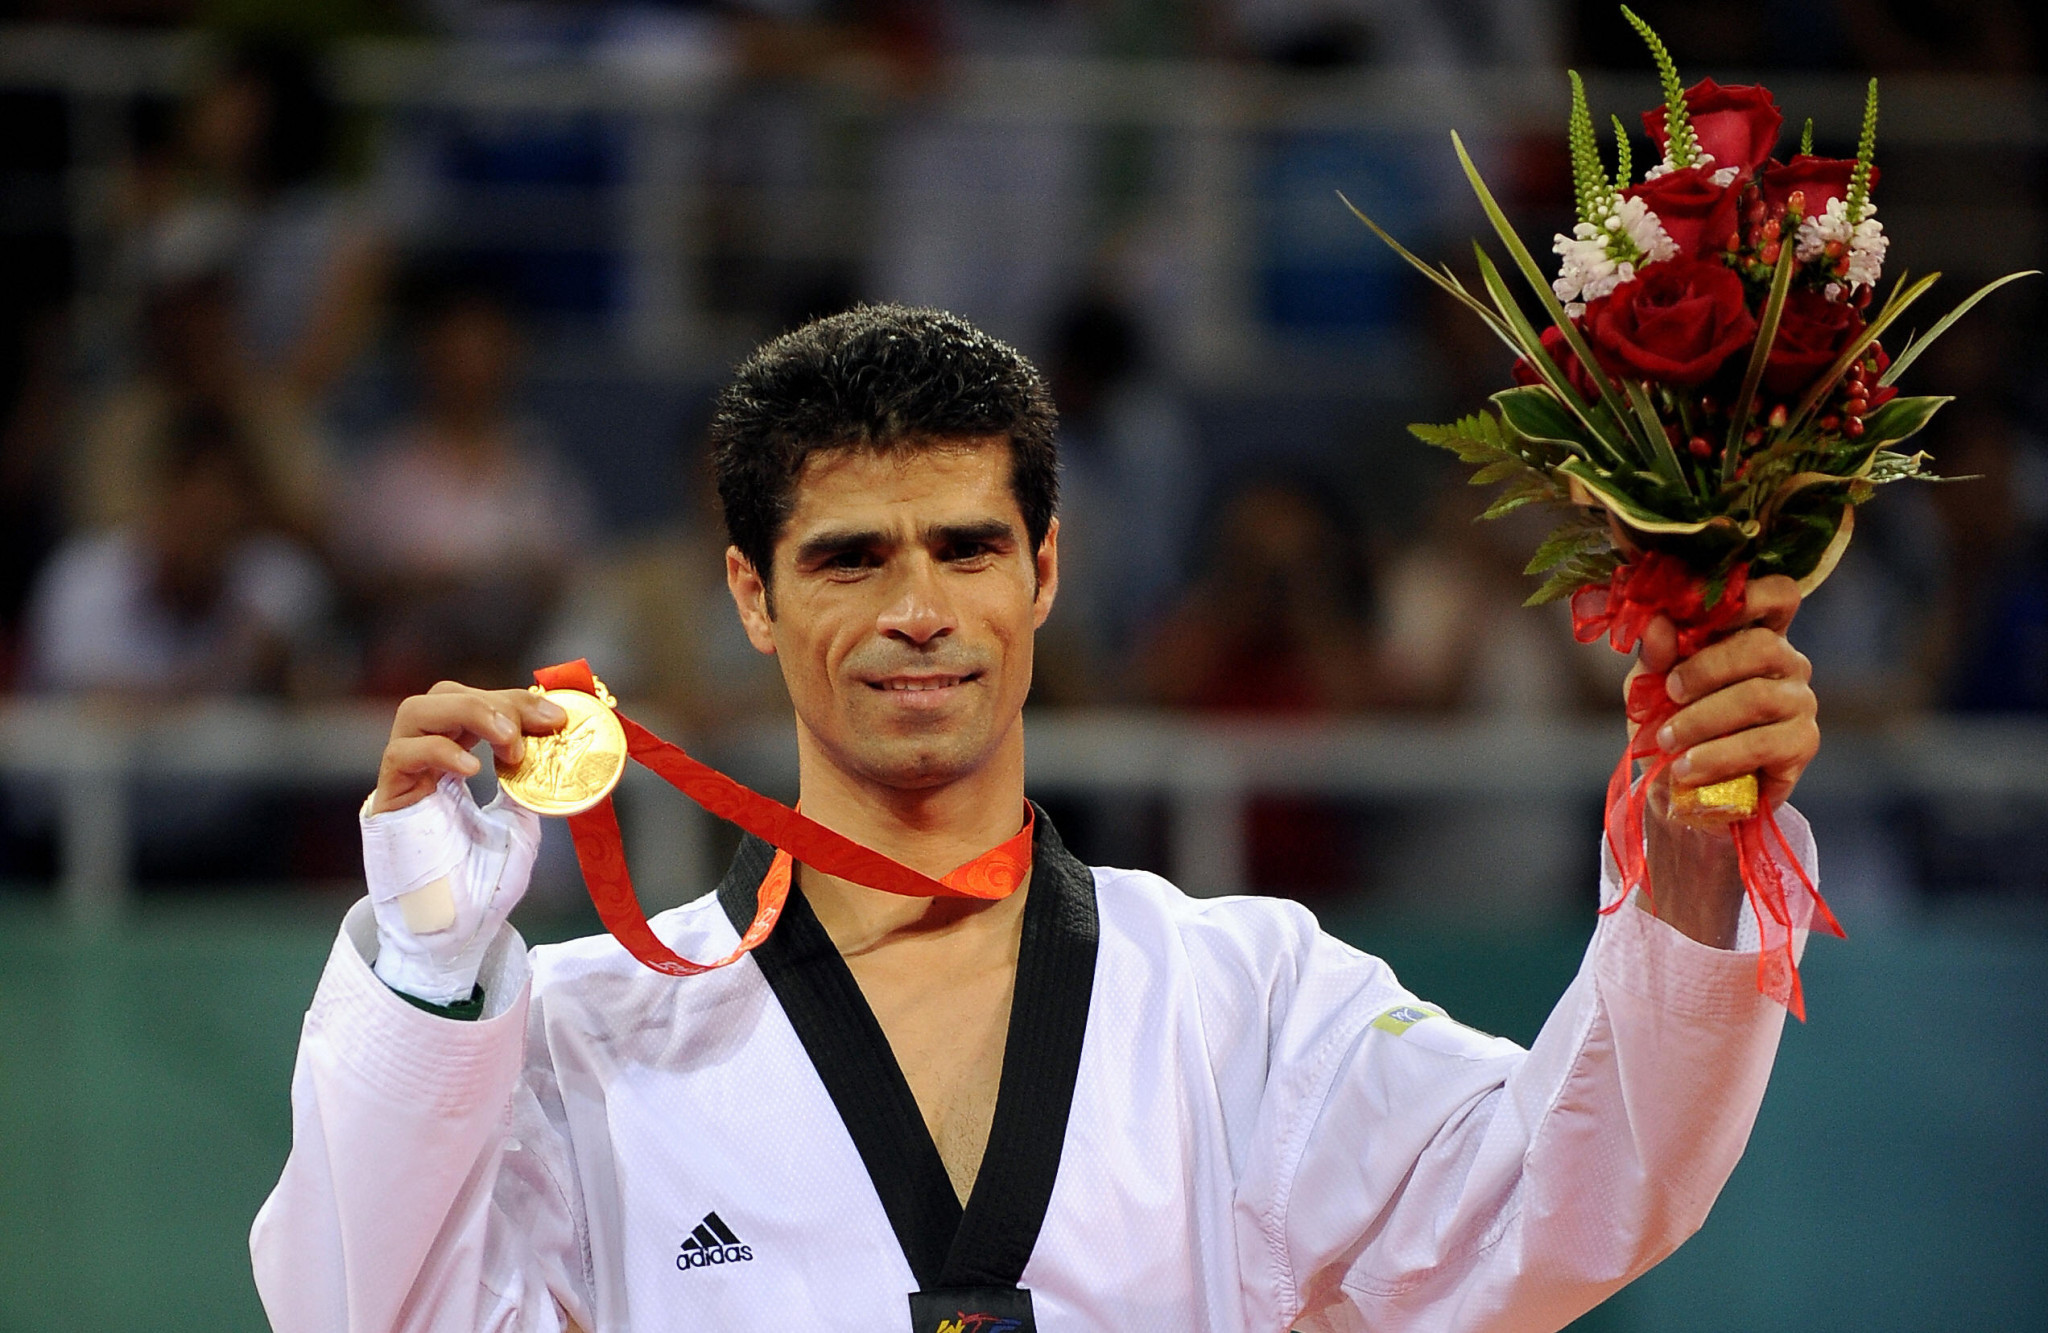 Iran's most decorated Olympian appointed to taekwondo role